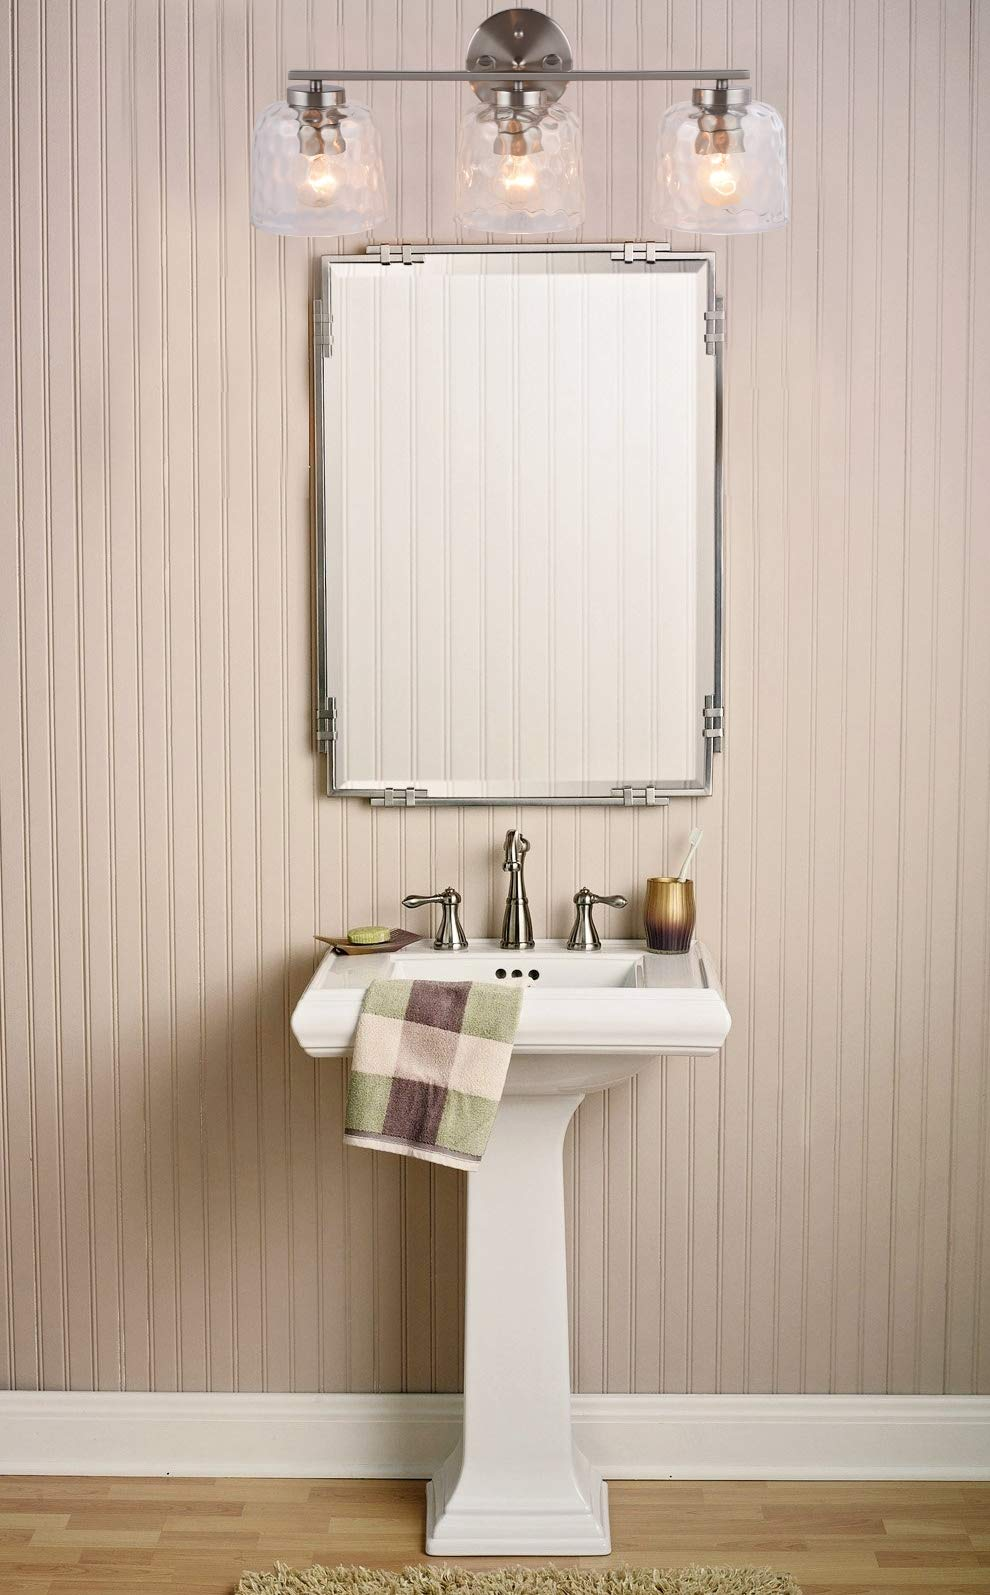 Alice House 20'' Vanity Lights with Hammered Glass, 3 Light Wall Lighting, Brushed Nickel Bathroom Lights Over Mirror, Bathroom Lighting AL6091-W3 by ALICE HOUSE (Image #5)